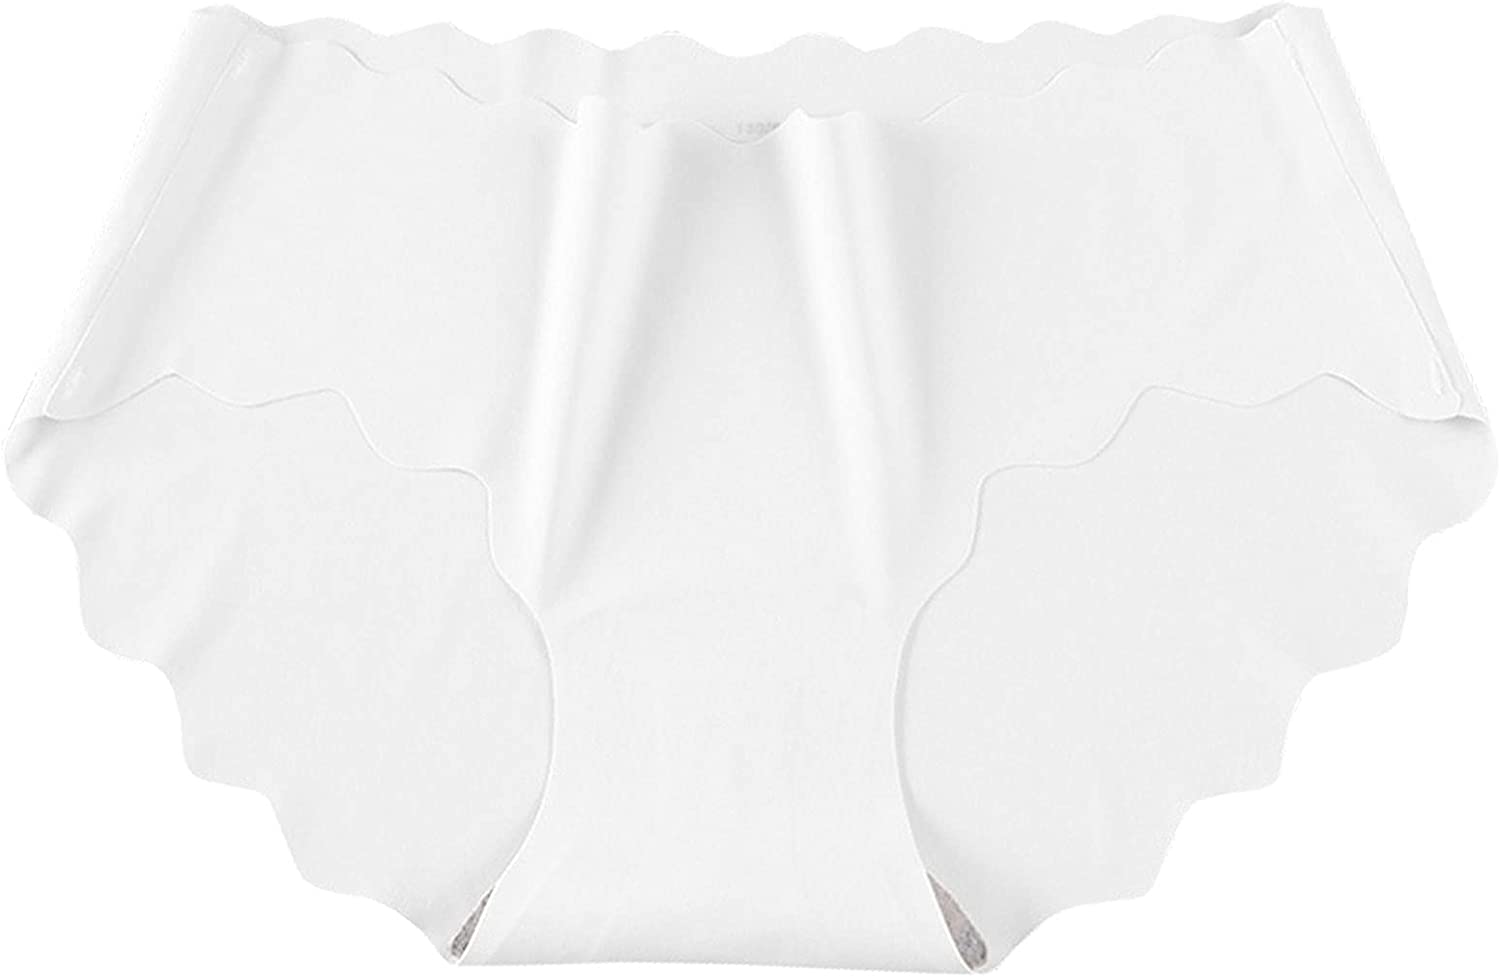 wodceeke Cotton Seamless Thongs for Women Pack, Women's Sexy V Waist Panties Lingerie Solid Thong G-String Comfy Underpants